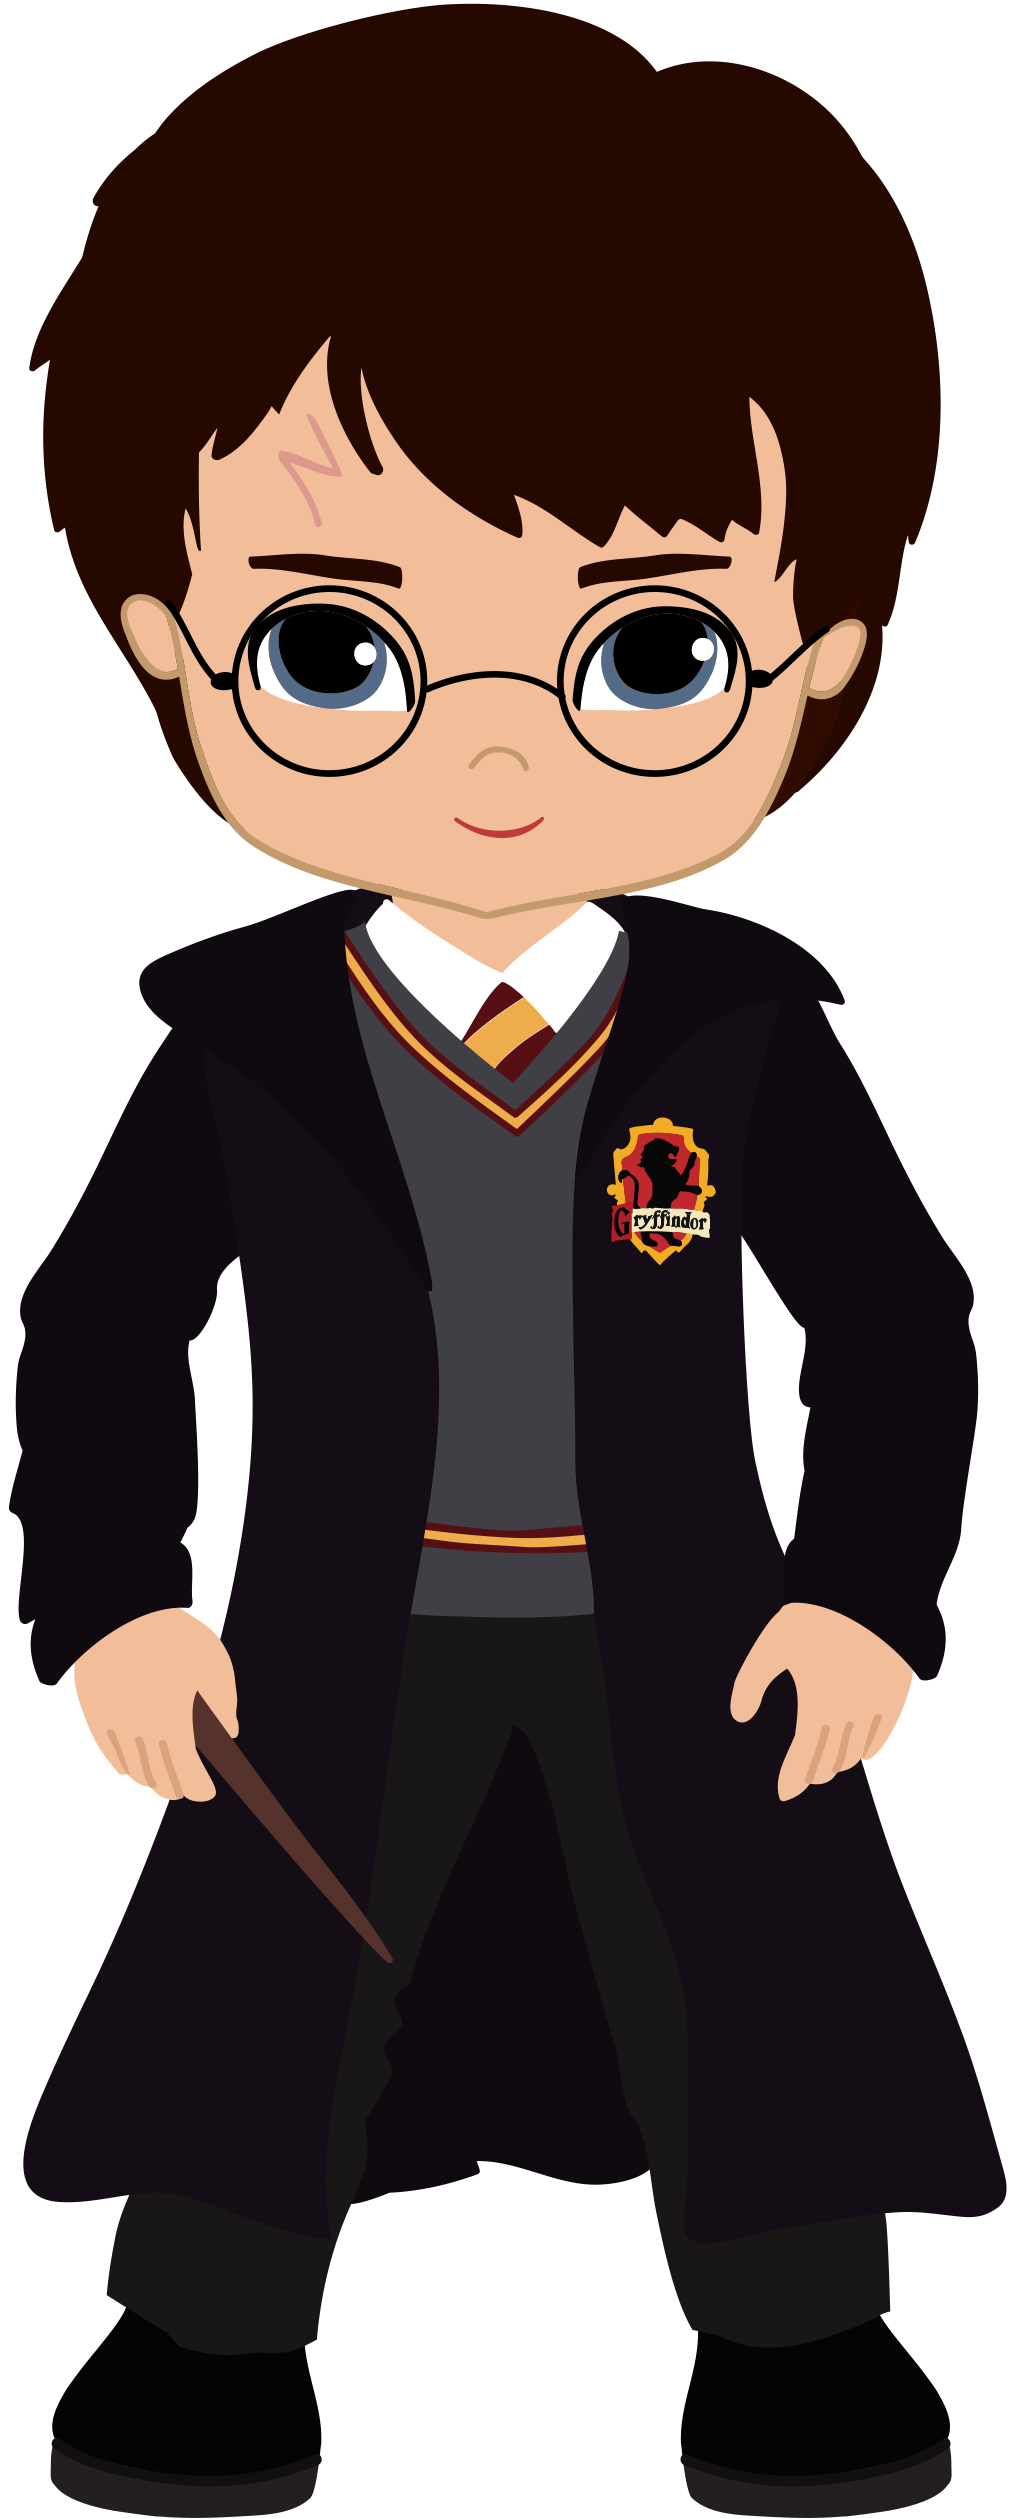 Pinteres ms. Character clipart harry potter